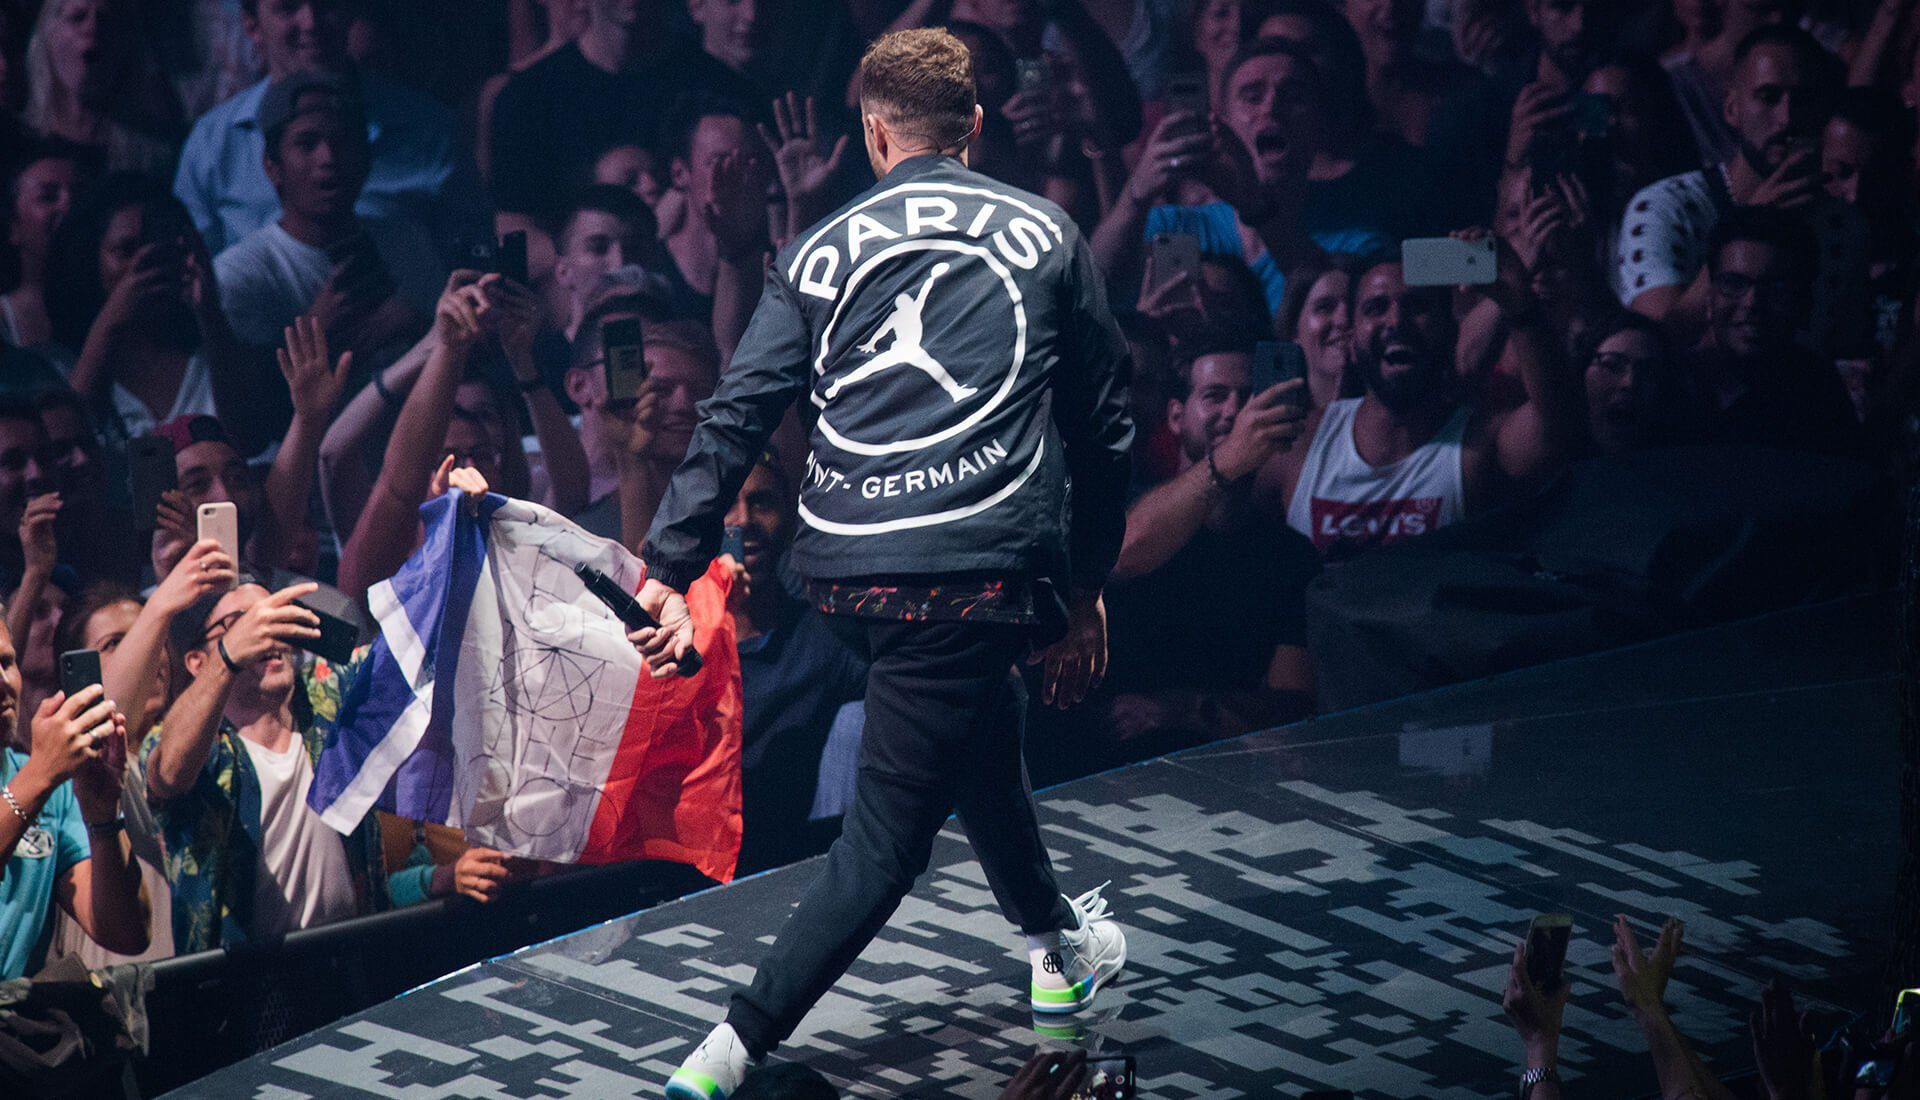 Justin Timberlake wearing the Jordan x PSG Jacket and the Quai54 Retro 3 Friends & Family